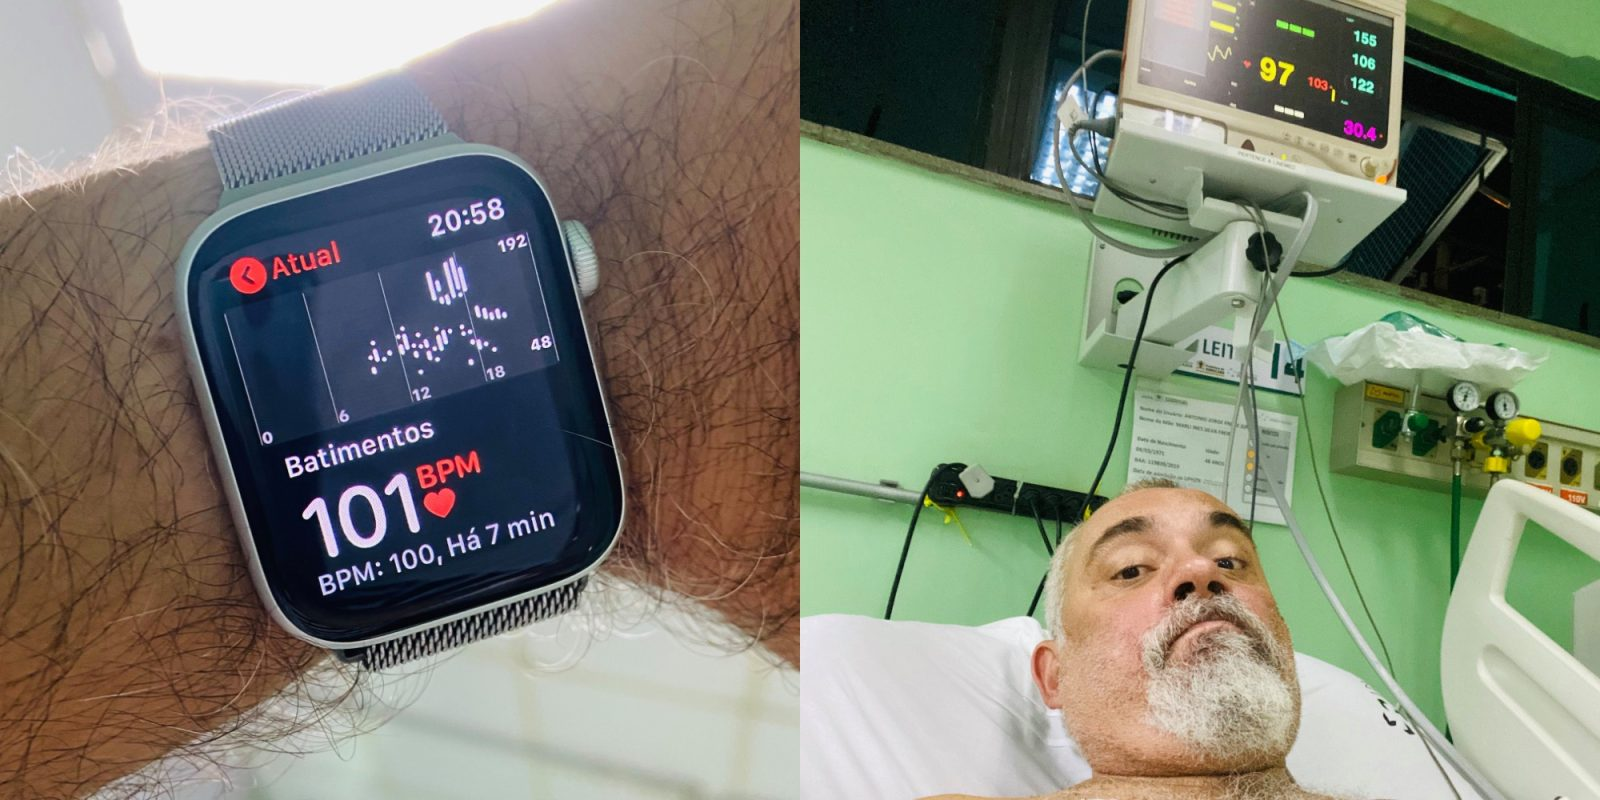 Apple Watch saves Brazilian man after heart alerts lead to life-threatening tachycardia diagnosis